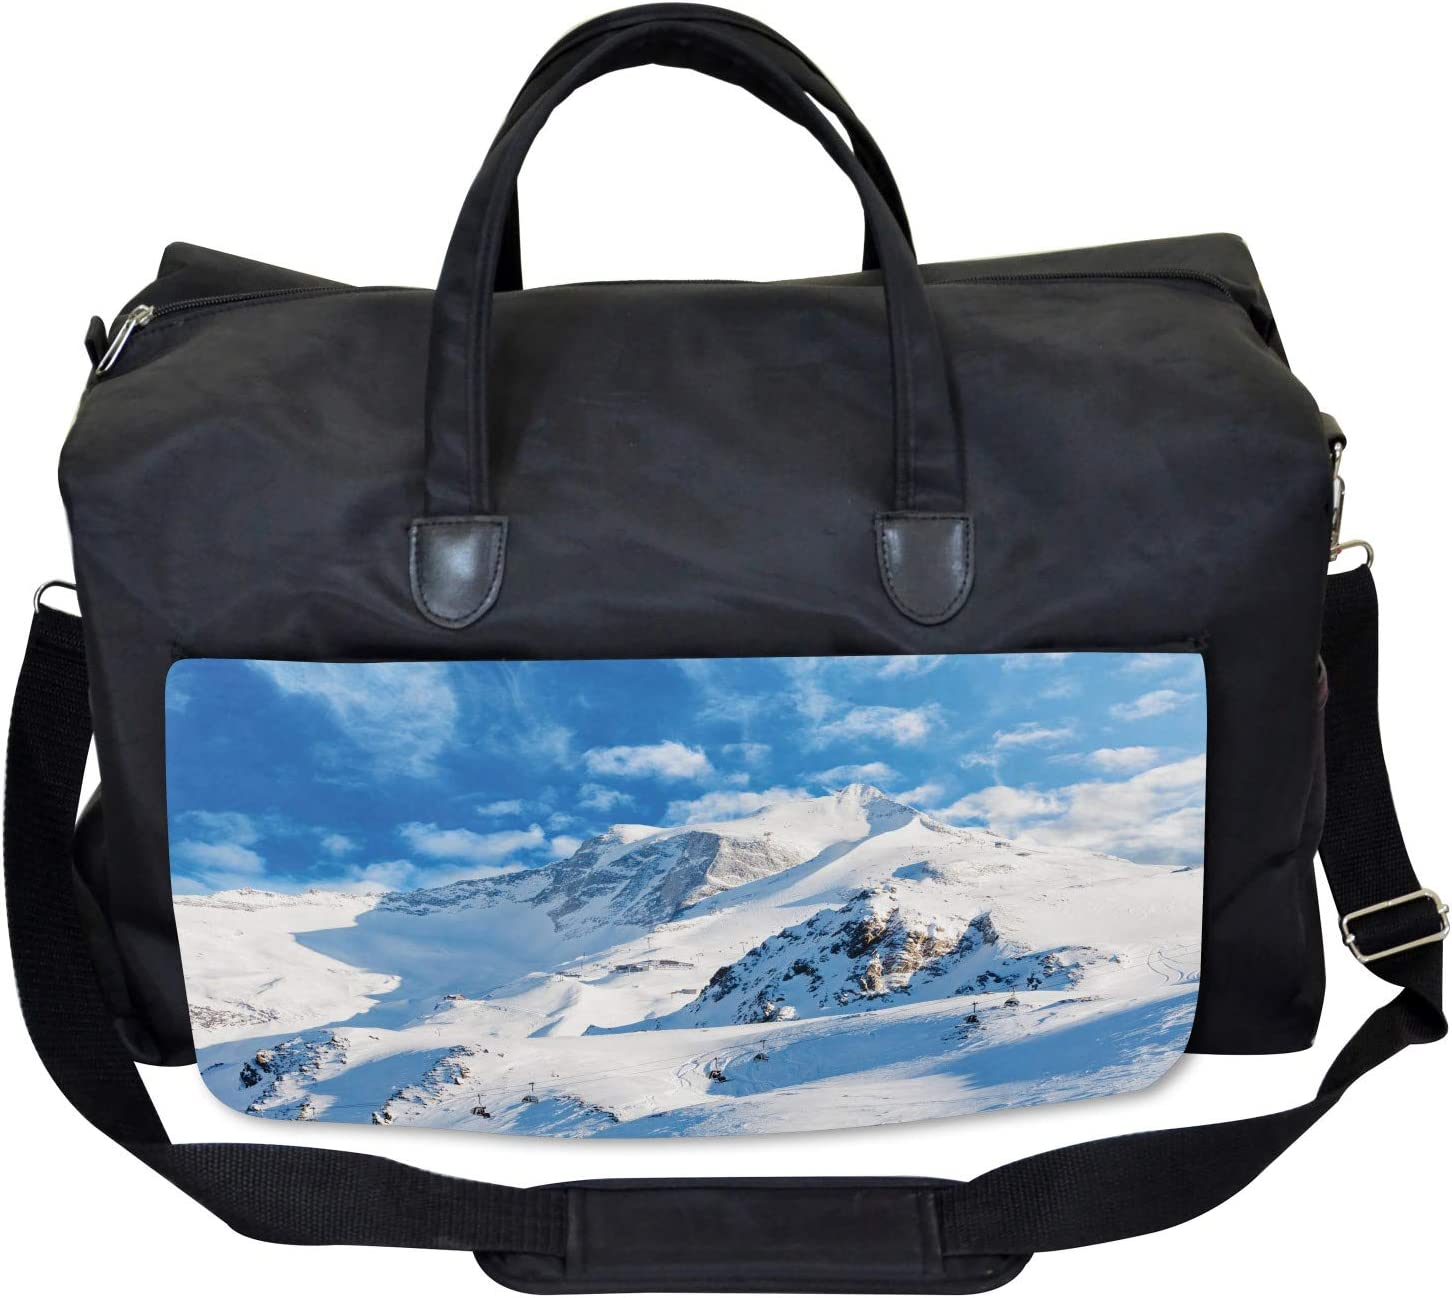 Snowy Mountain Ski Ambesonne Winter Gym Bag Large Weekender Carry-on